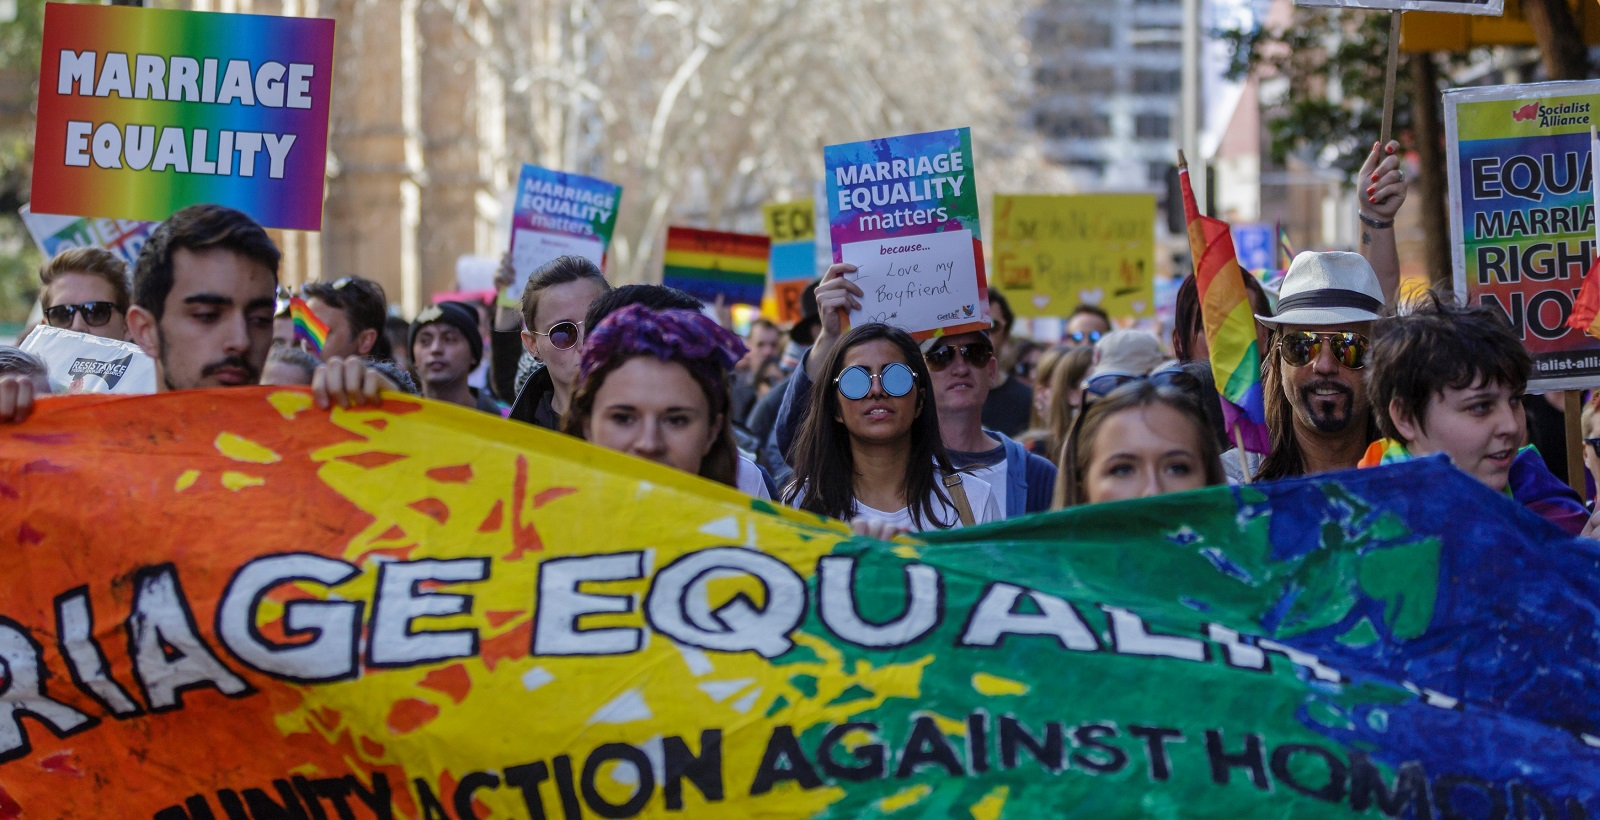 Protestors march through the Sydney CBD for Gay Rights on 6 August. (Photo: Brook Mitchell/Getty Images)